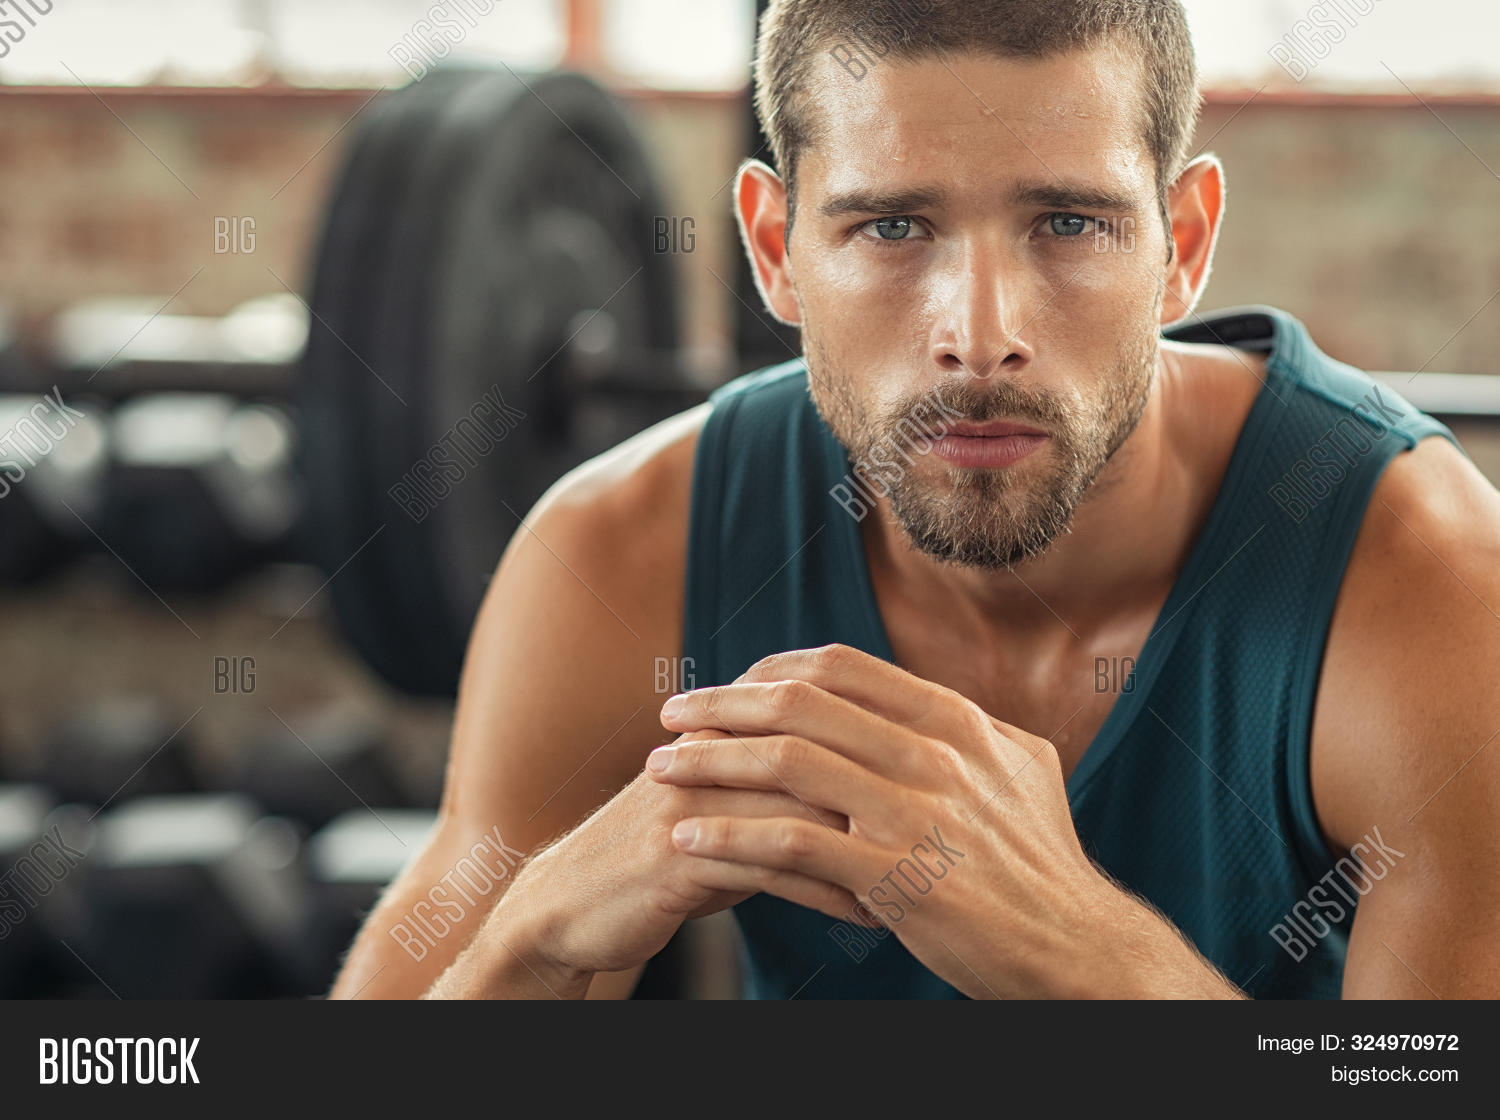 athlete,attractive,challenge,competitive,concentration,dedication,determination,exercise,exhausted,face,fit,fitness,fitness man,focused,guy,gym,health club,healthy,looking,motivation,muscular,people,portrait,power,relax,rest,resting,resting man,serious,sitting,sport,sport gym,sportsman,strength,strong,strong man,sweating,sweaty,tired,training,training fitness,workout,workout gym,young